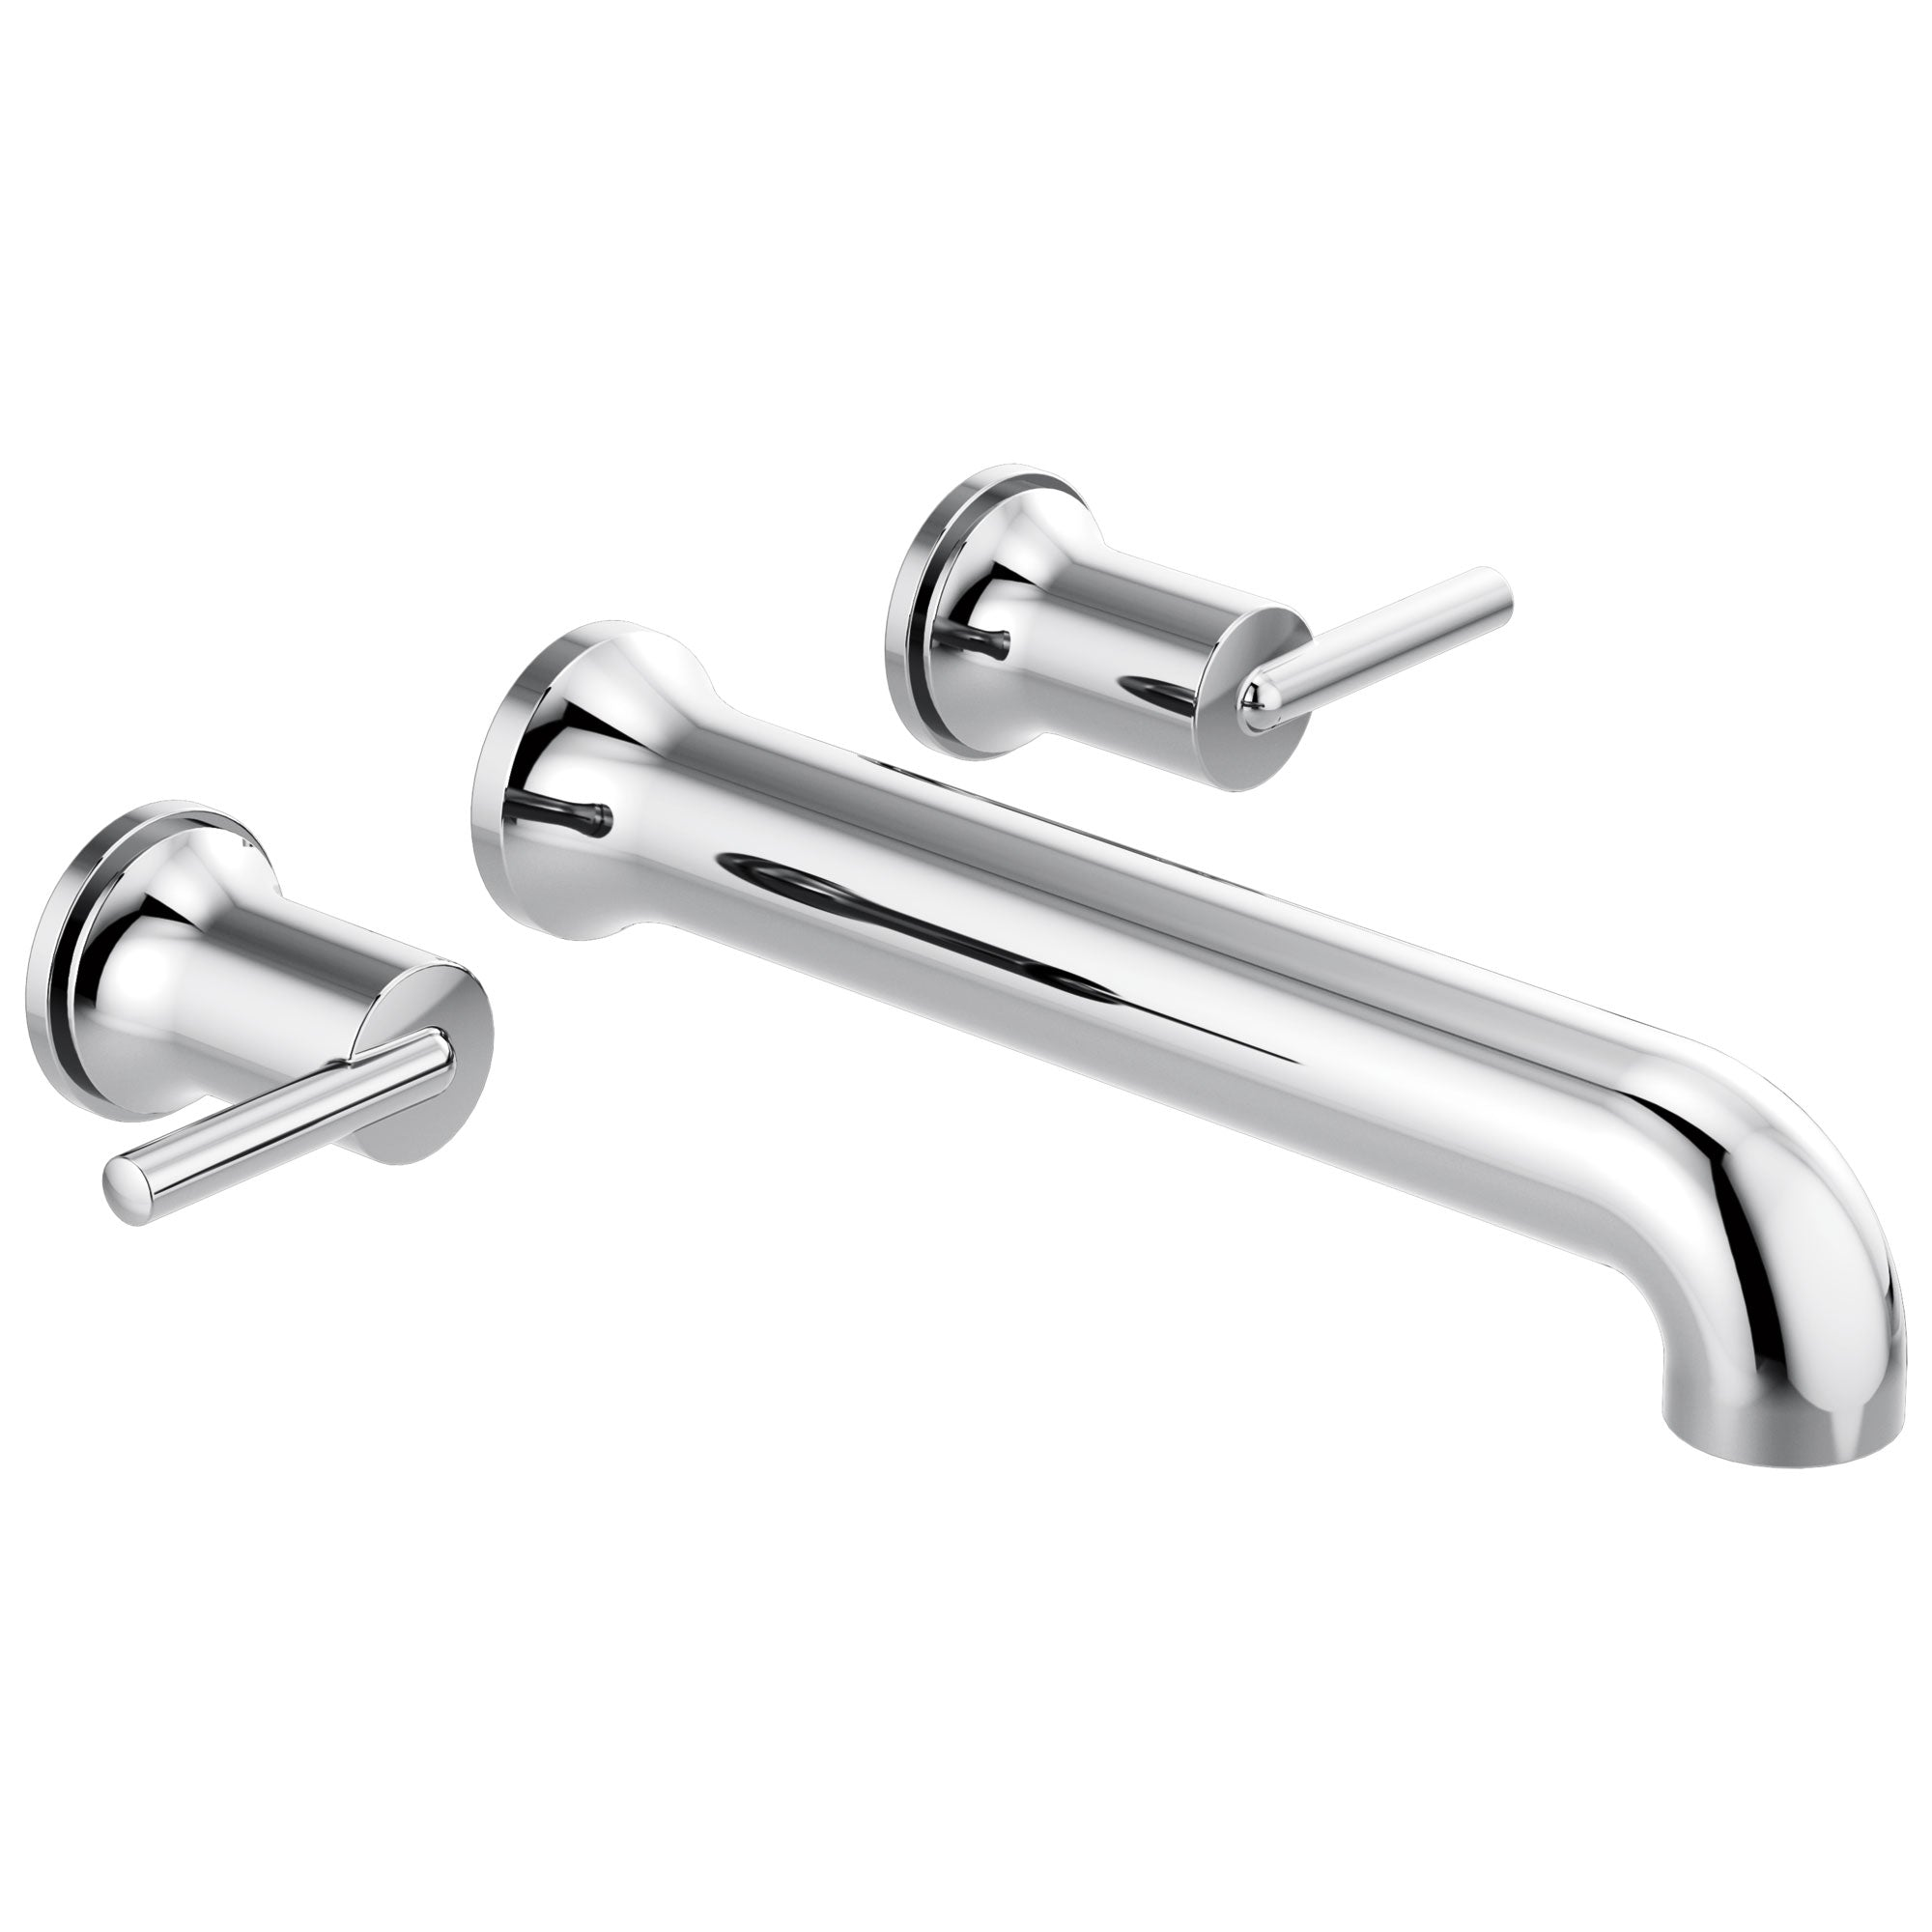 Delta Trinsic Modern Chrome Finish Wall Mounted Tub Filler Faucet Trim Kit (Requires Valve) DT5759WL